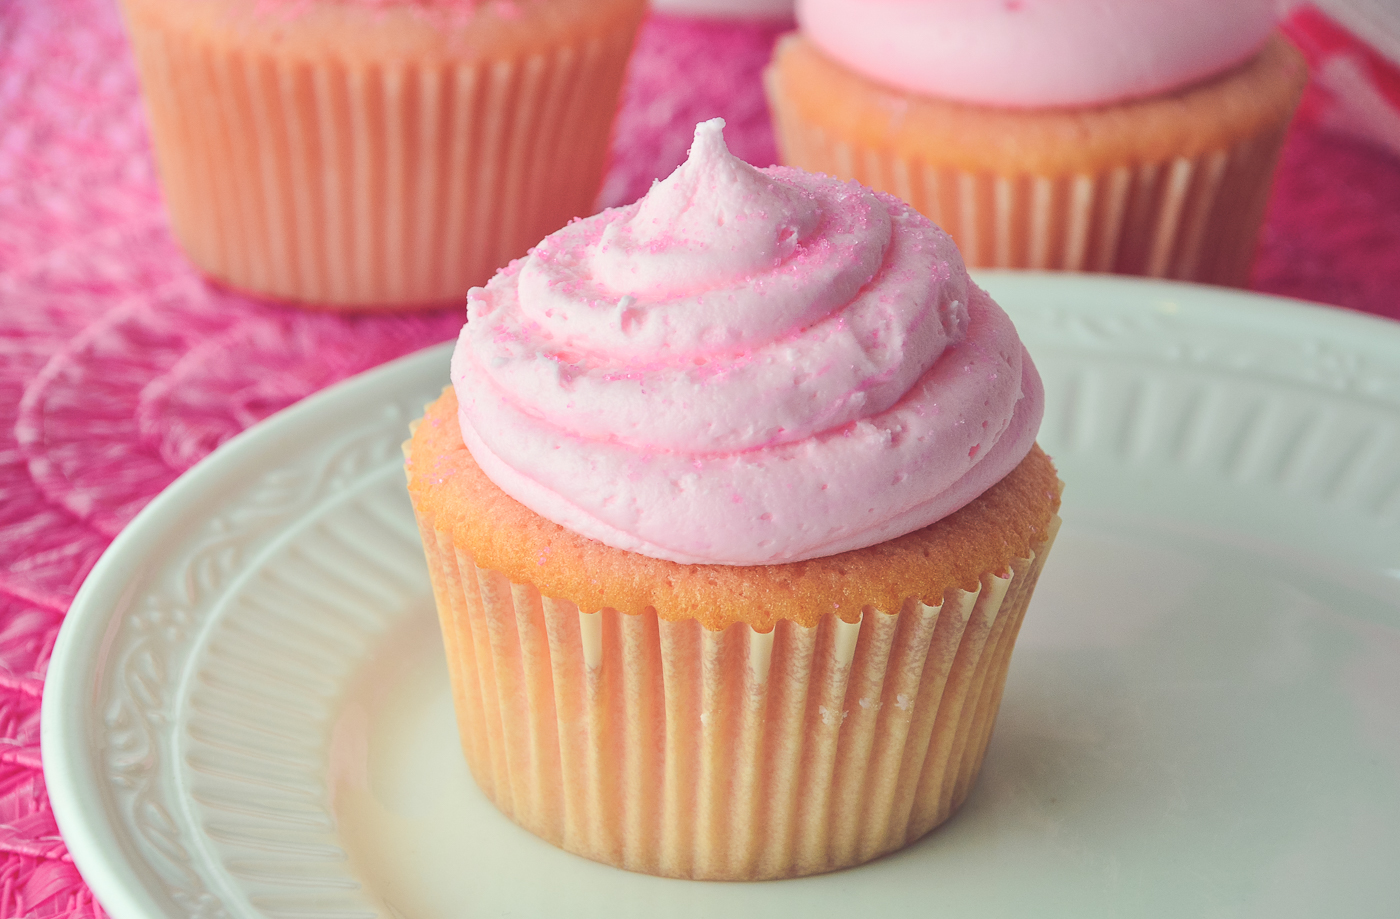 Almond Cupcakes with Cherry Almond Buttercream Frosting